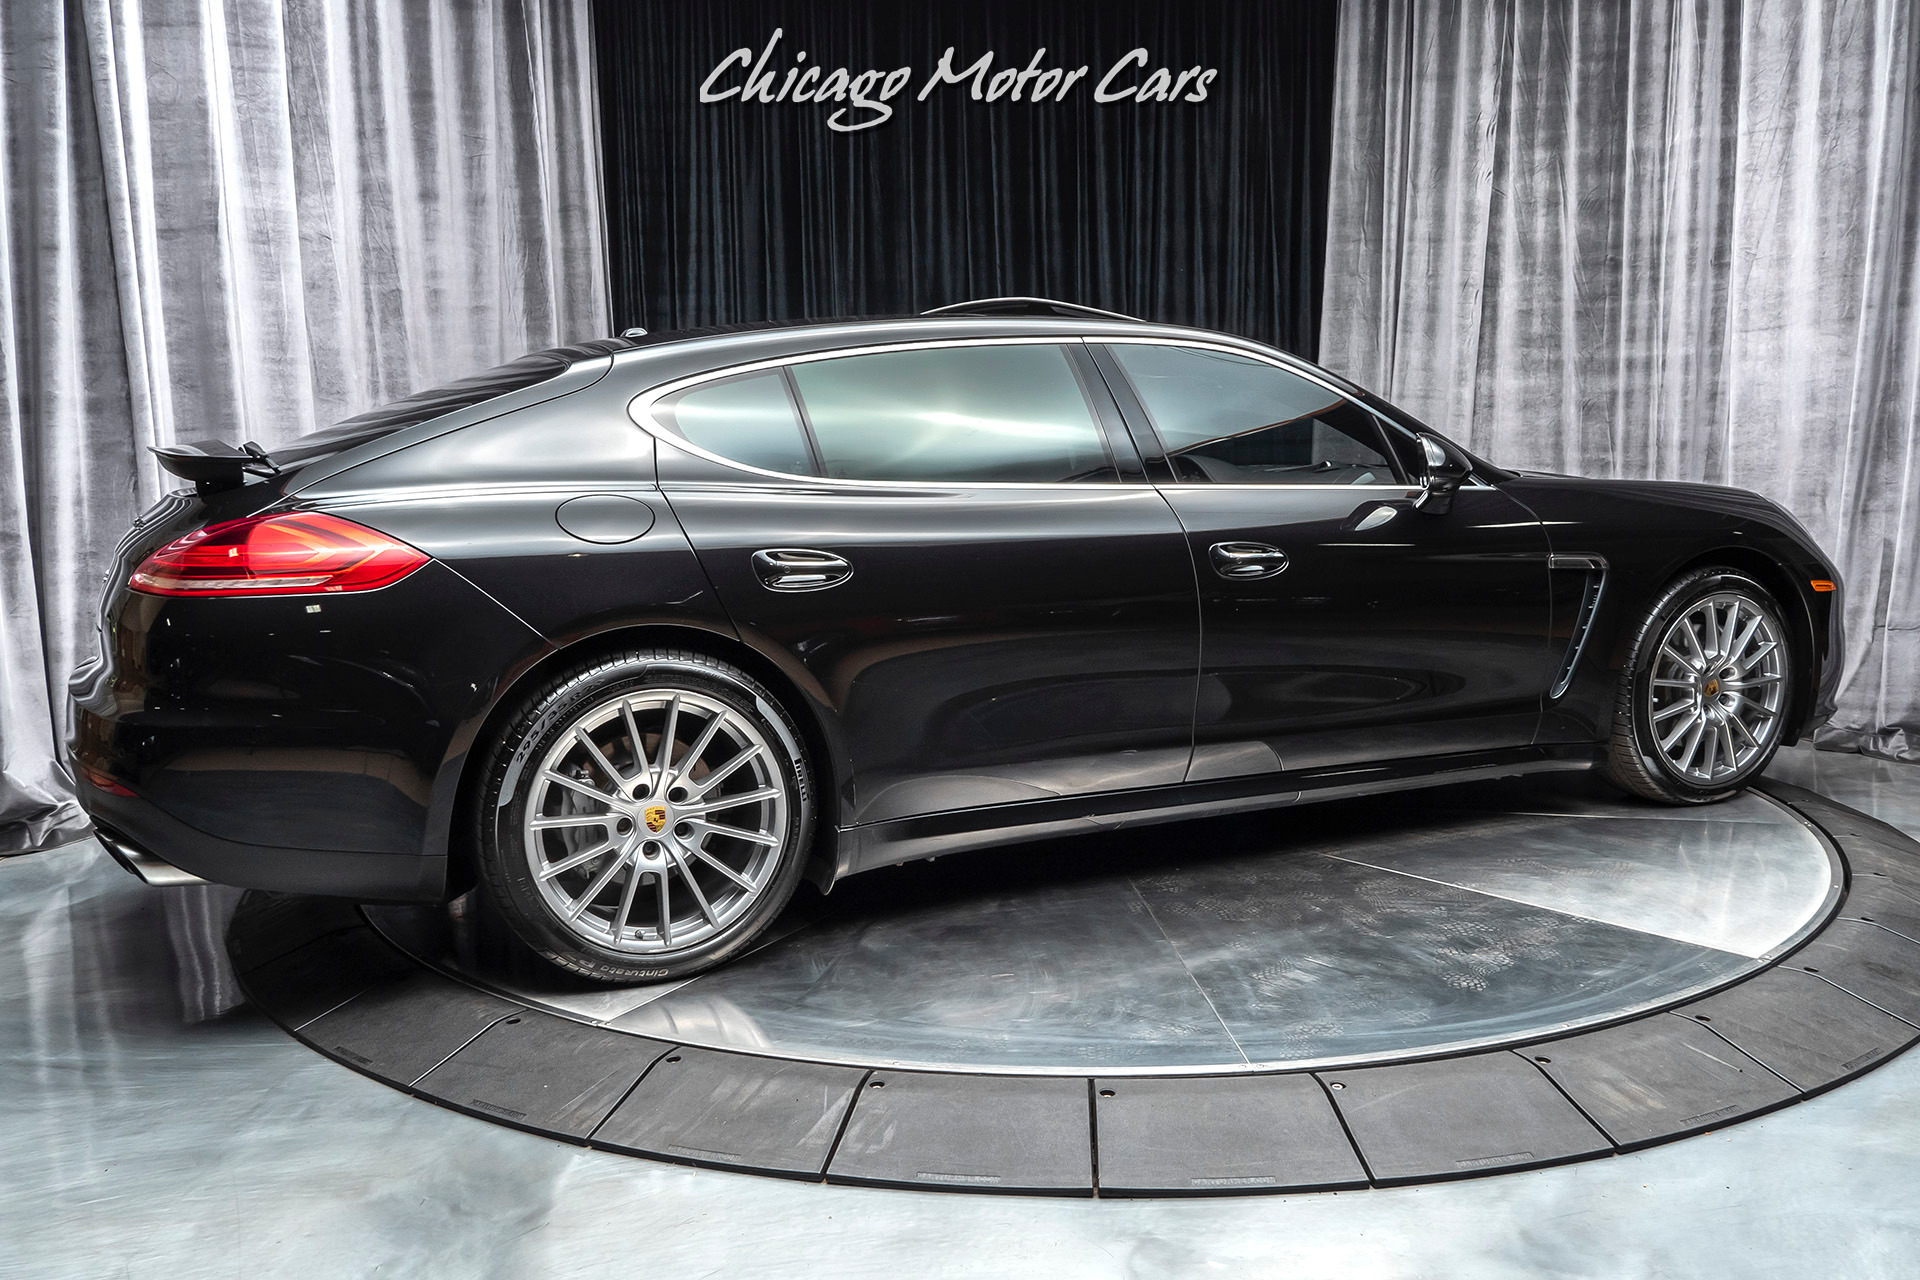 Used 2014 Porsche Panamera 4s Executive Sedan Msrp 141k For Sale Special Pricing Chicago Motor Cars Stock 16217